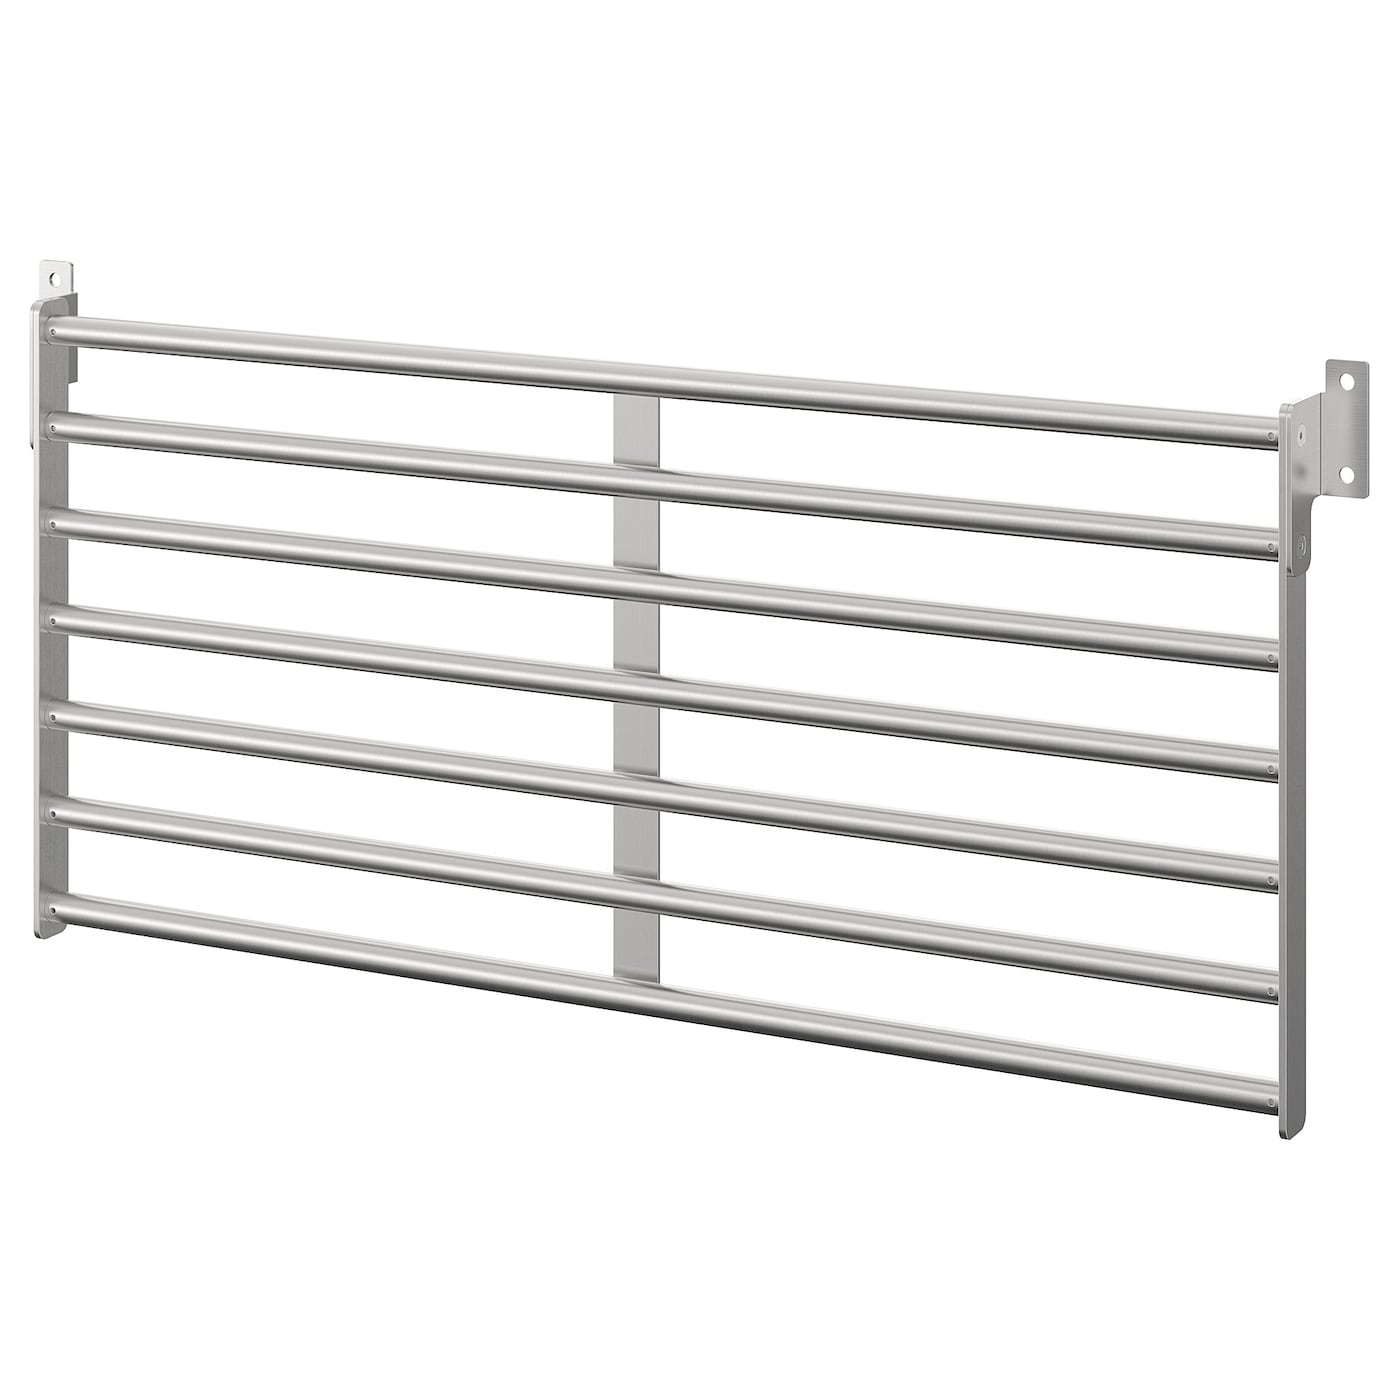 KUNGSFORS - Wall rack, stainless steel